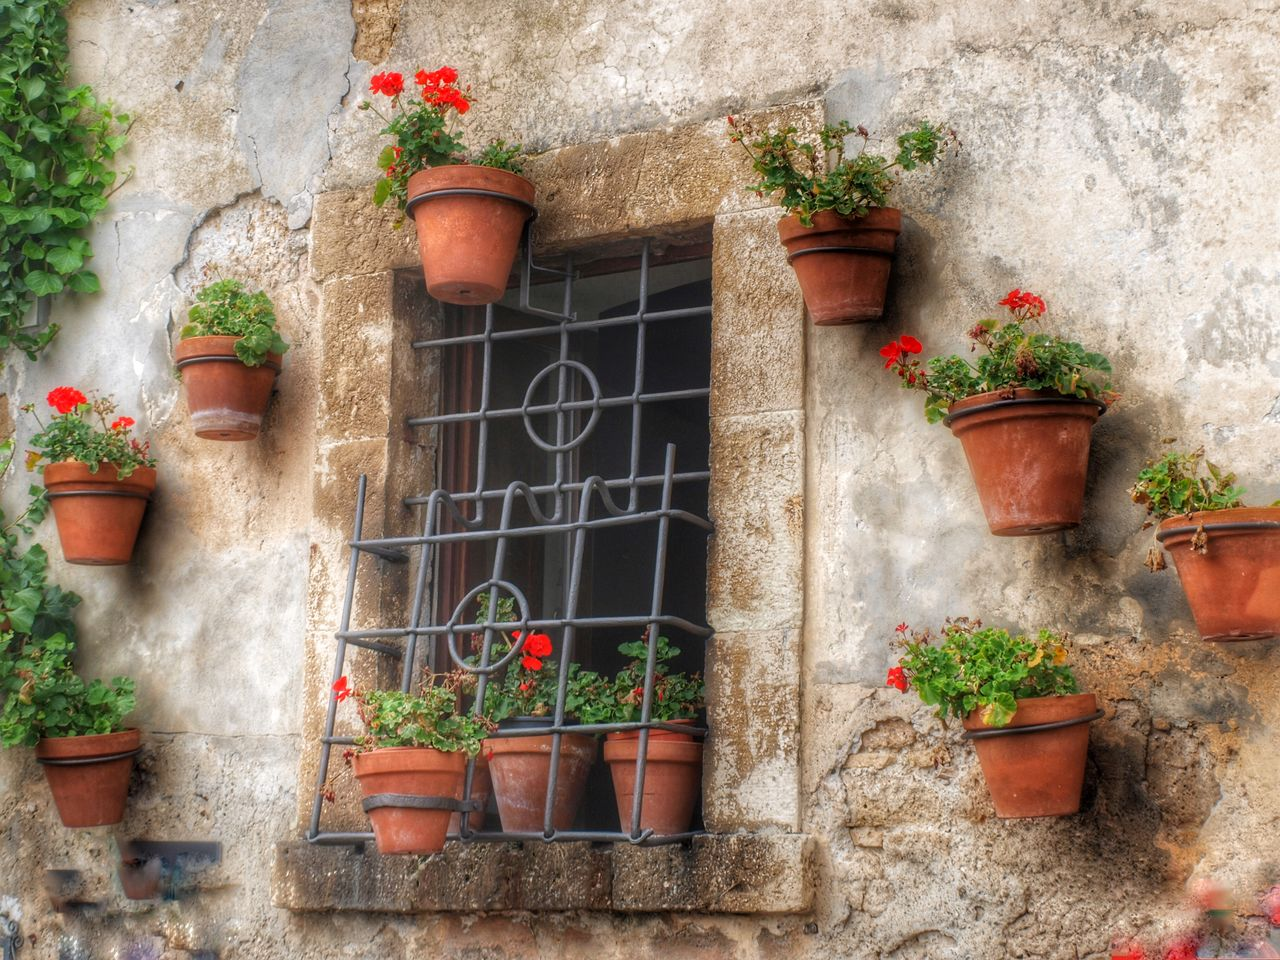 potted plant, plant, growth, architecture, window box, flower, day, building exterior, outdoors, built structure, no people, window, watering can, nature